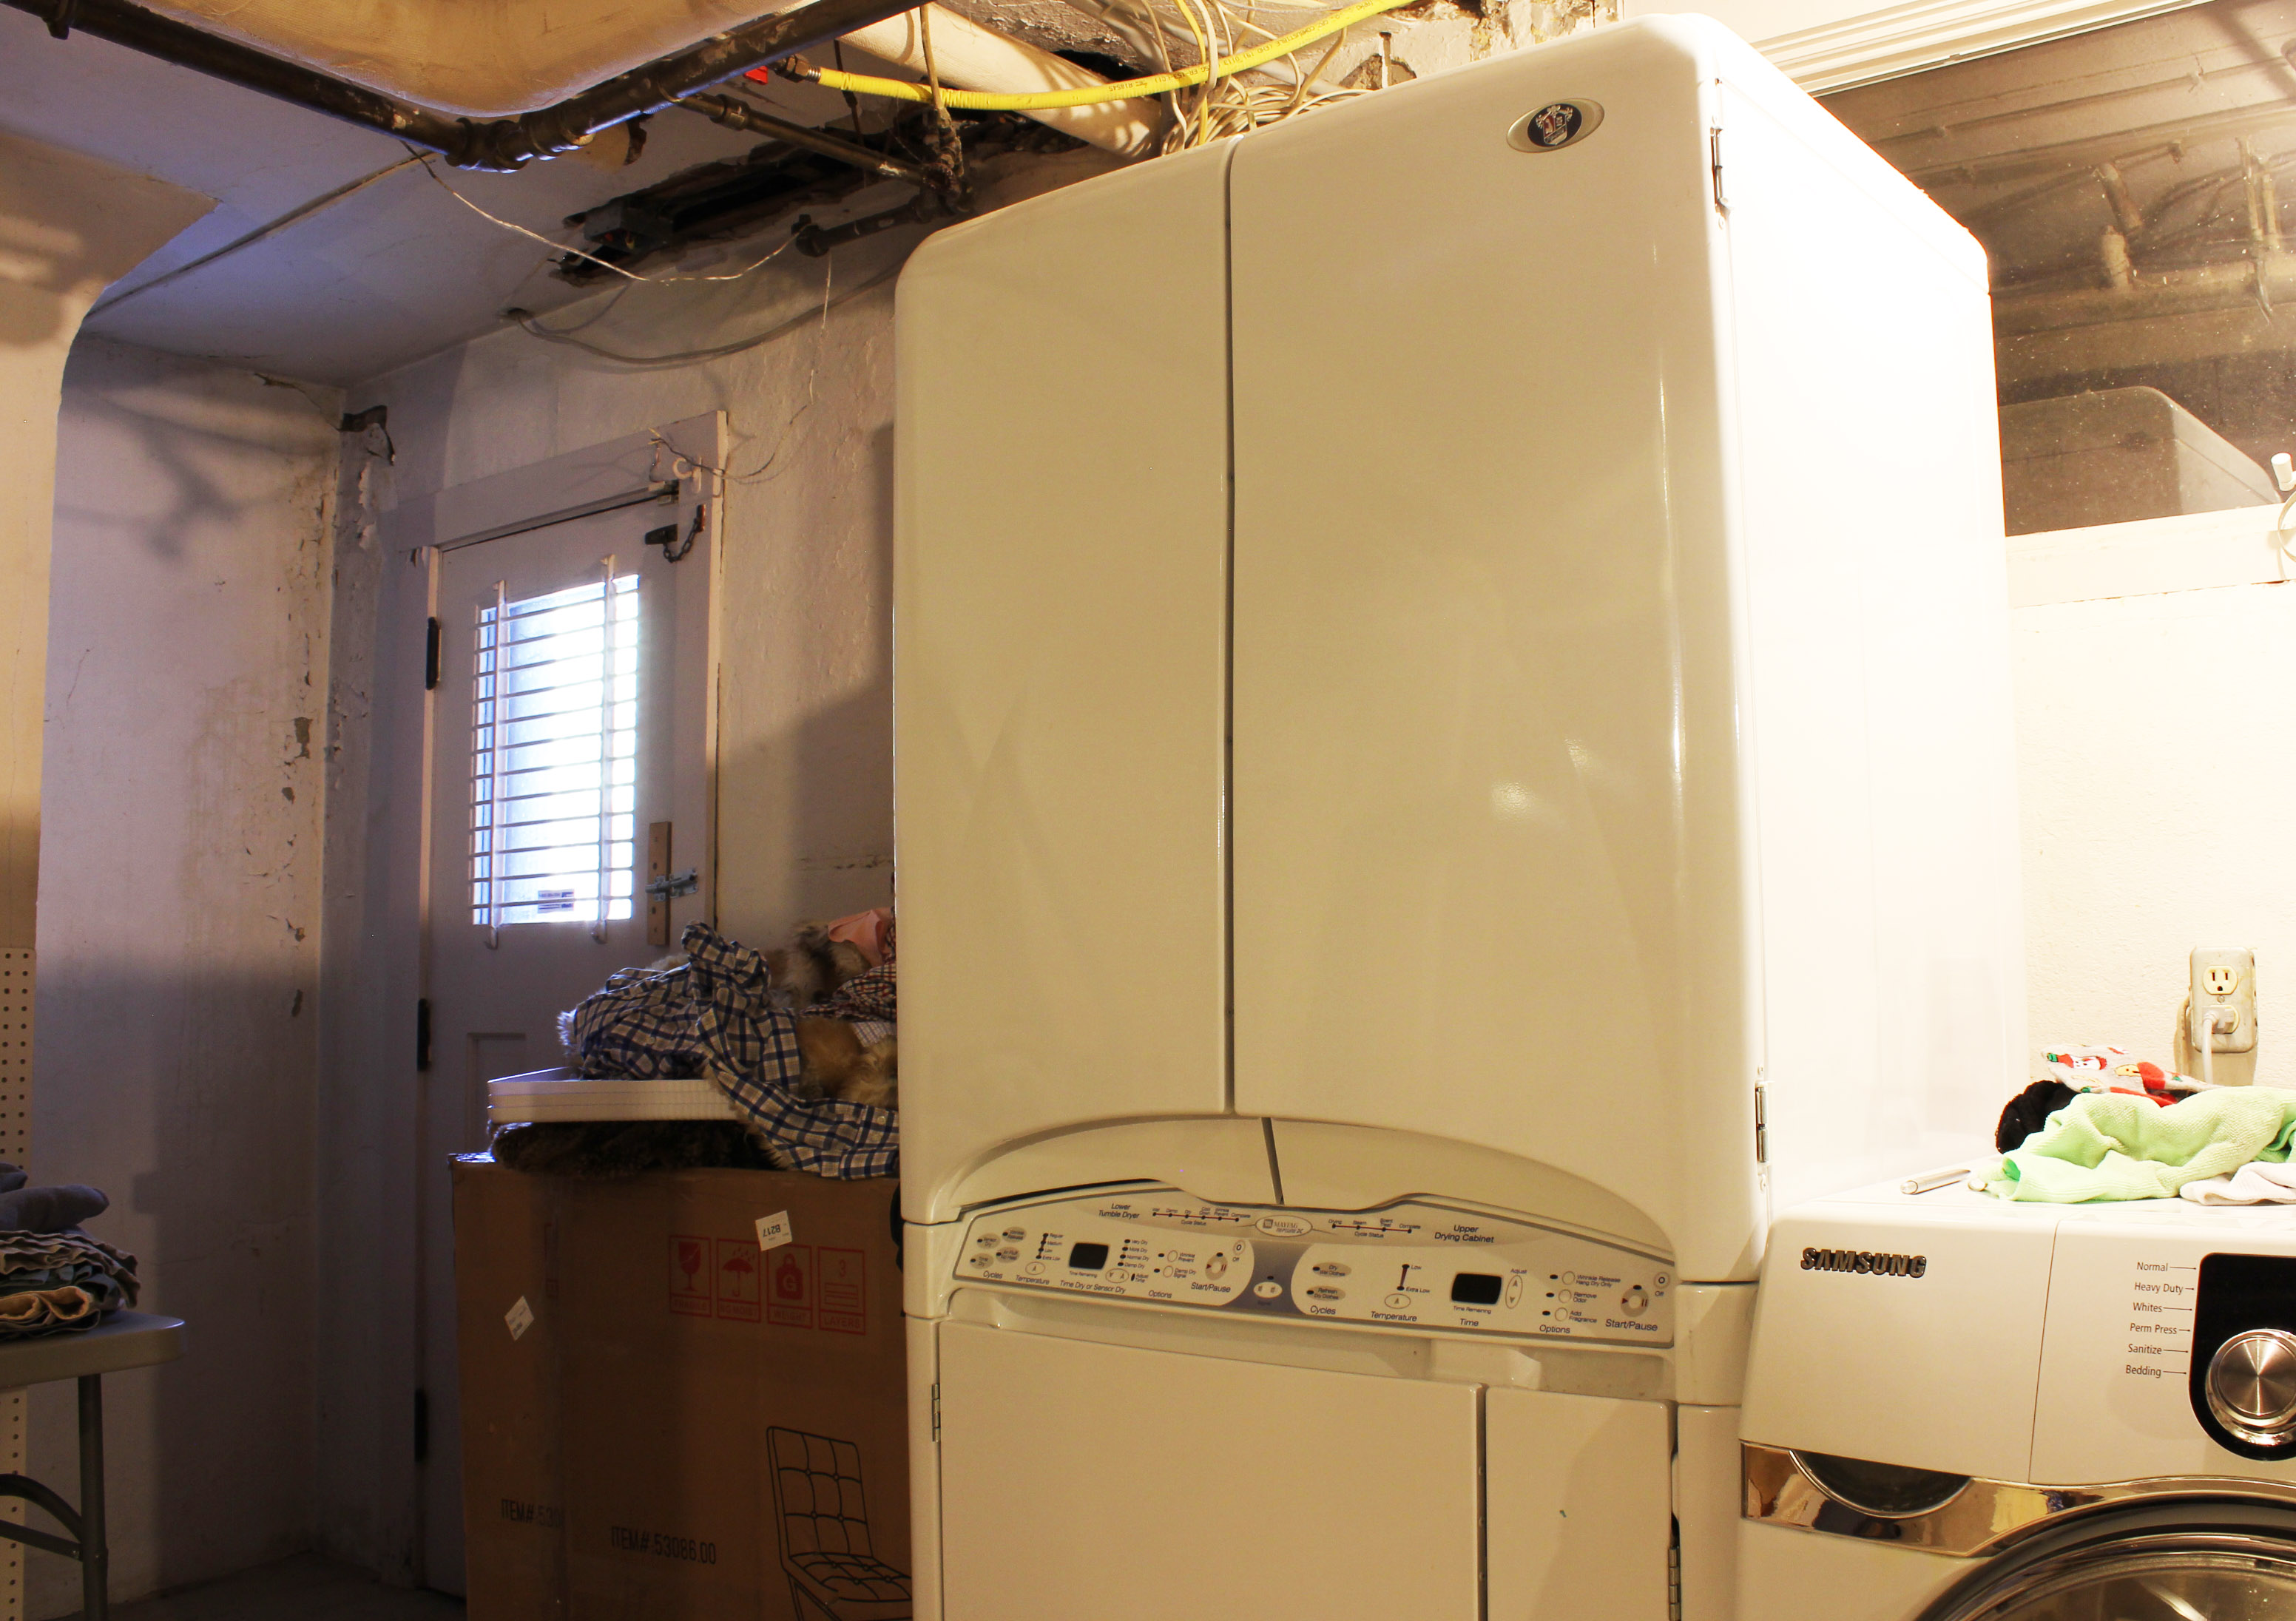 Maytag Neptune DC with Upper Drying Cabinet : EBTH